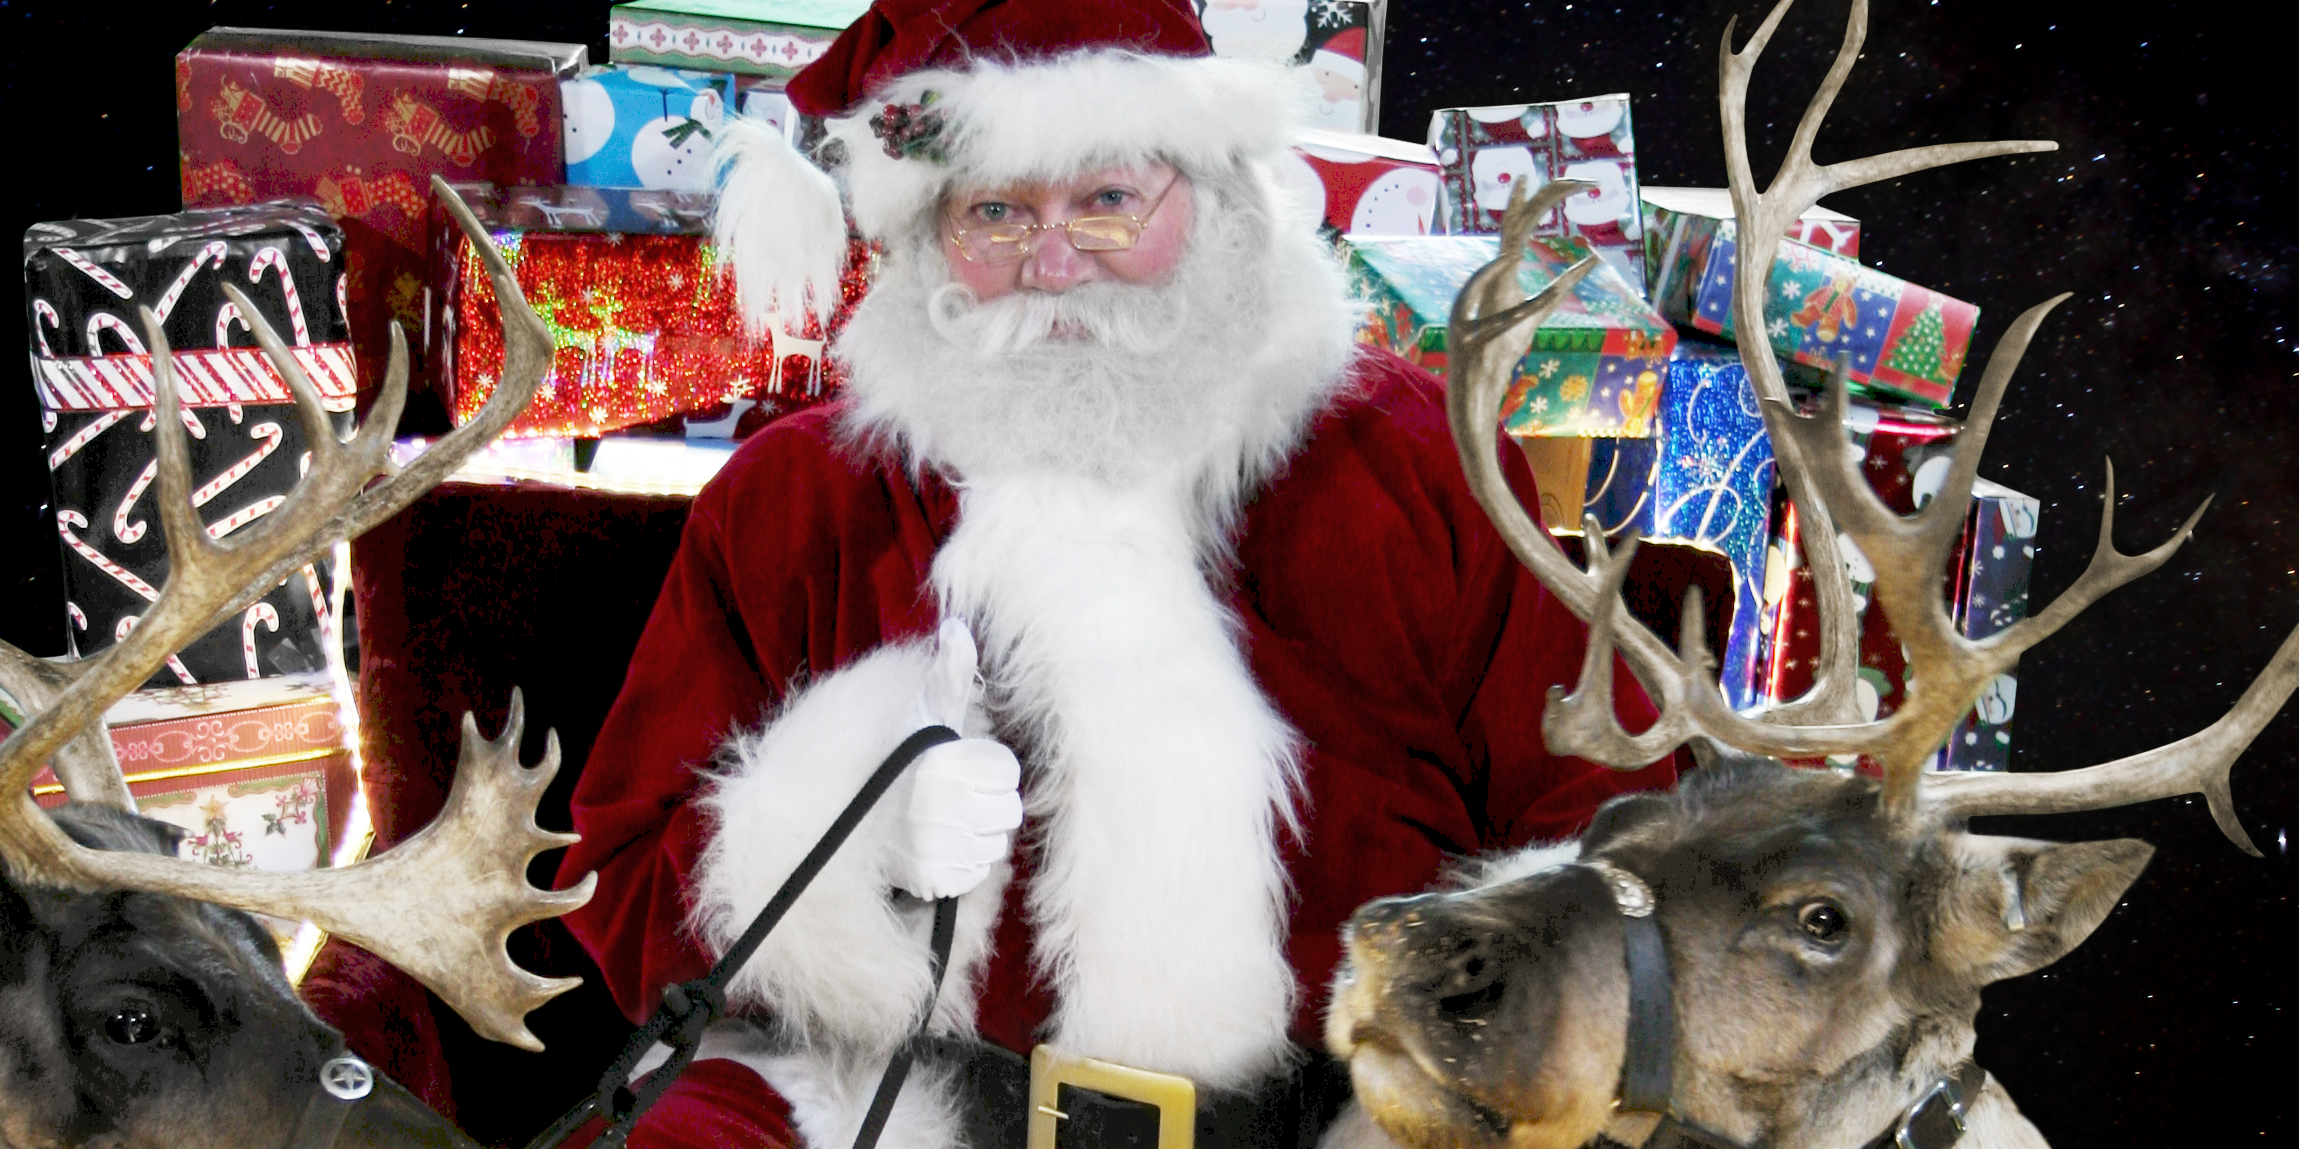 Santa and reindeer delivering presents from the elves